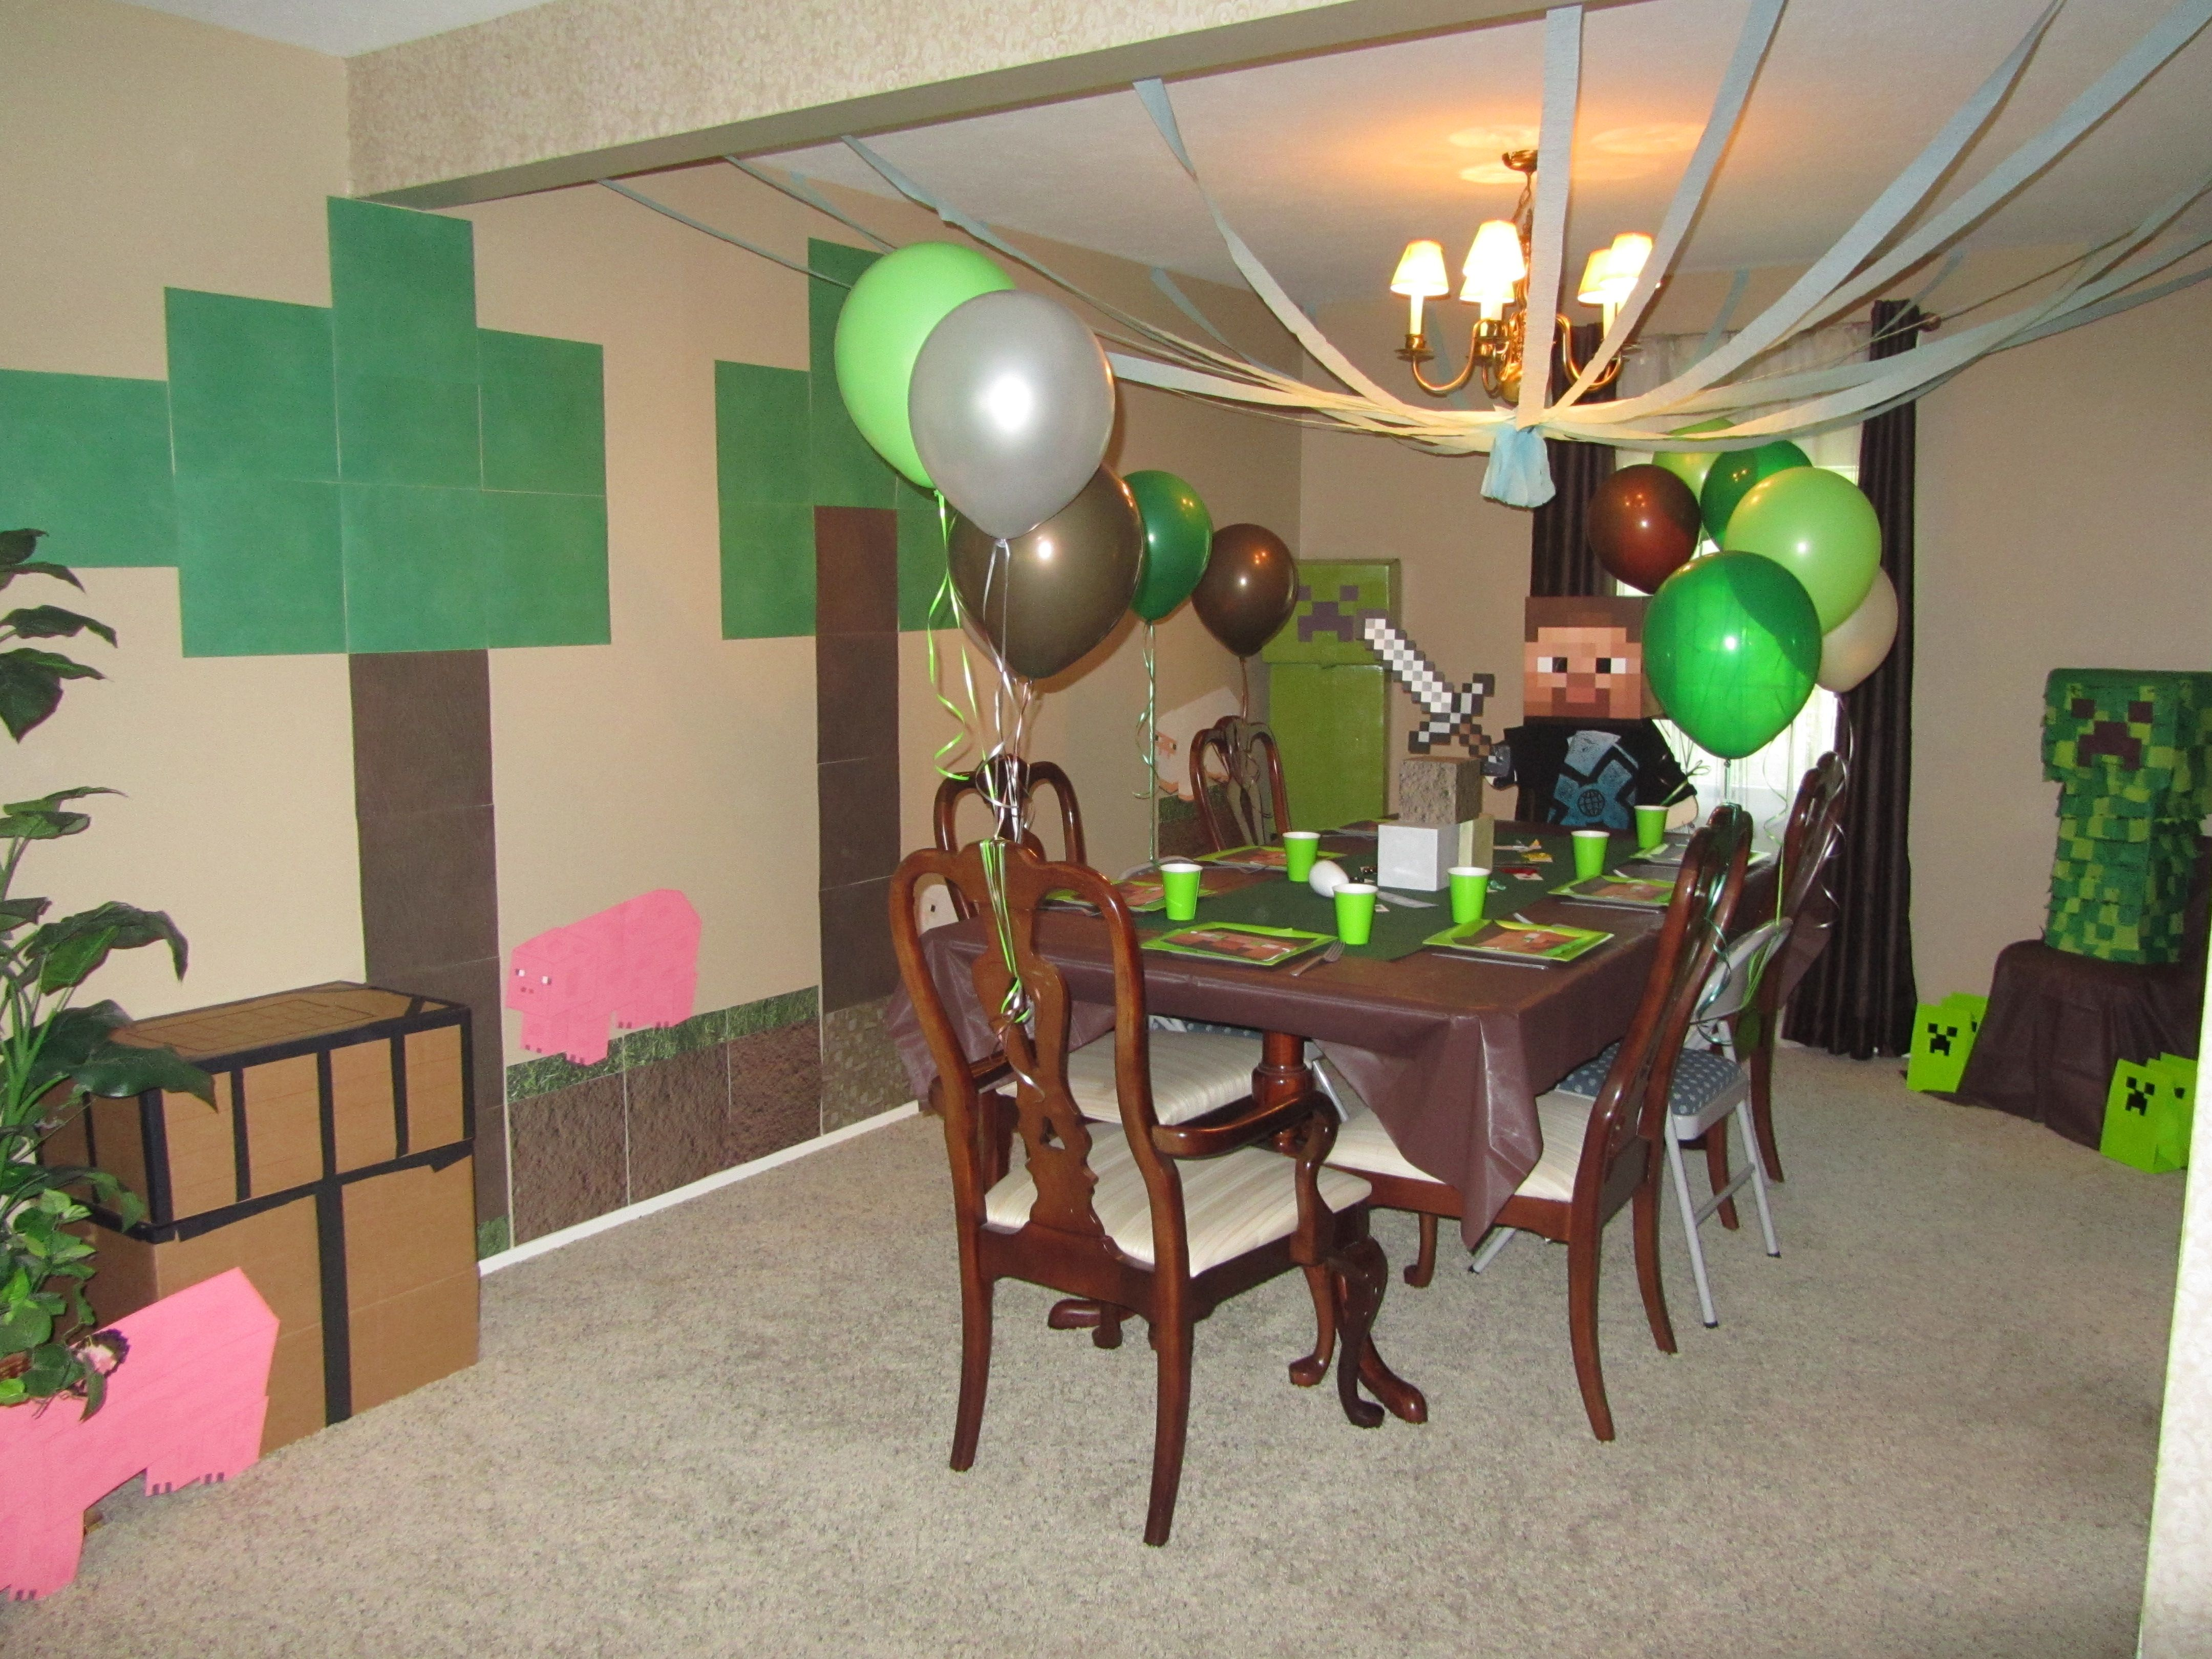 Minecraft Wall Decorations 191 best minecraft party ideas images on pinterest | minecraft